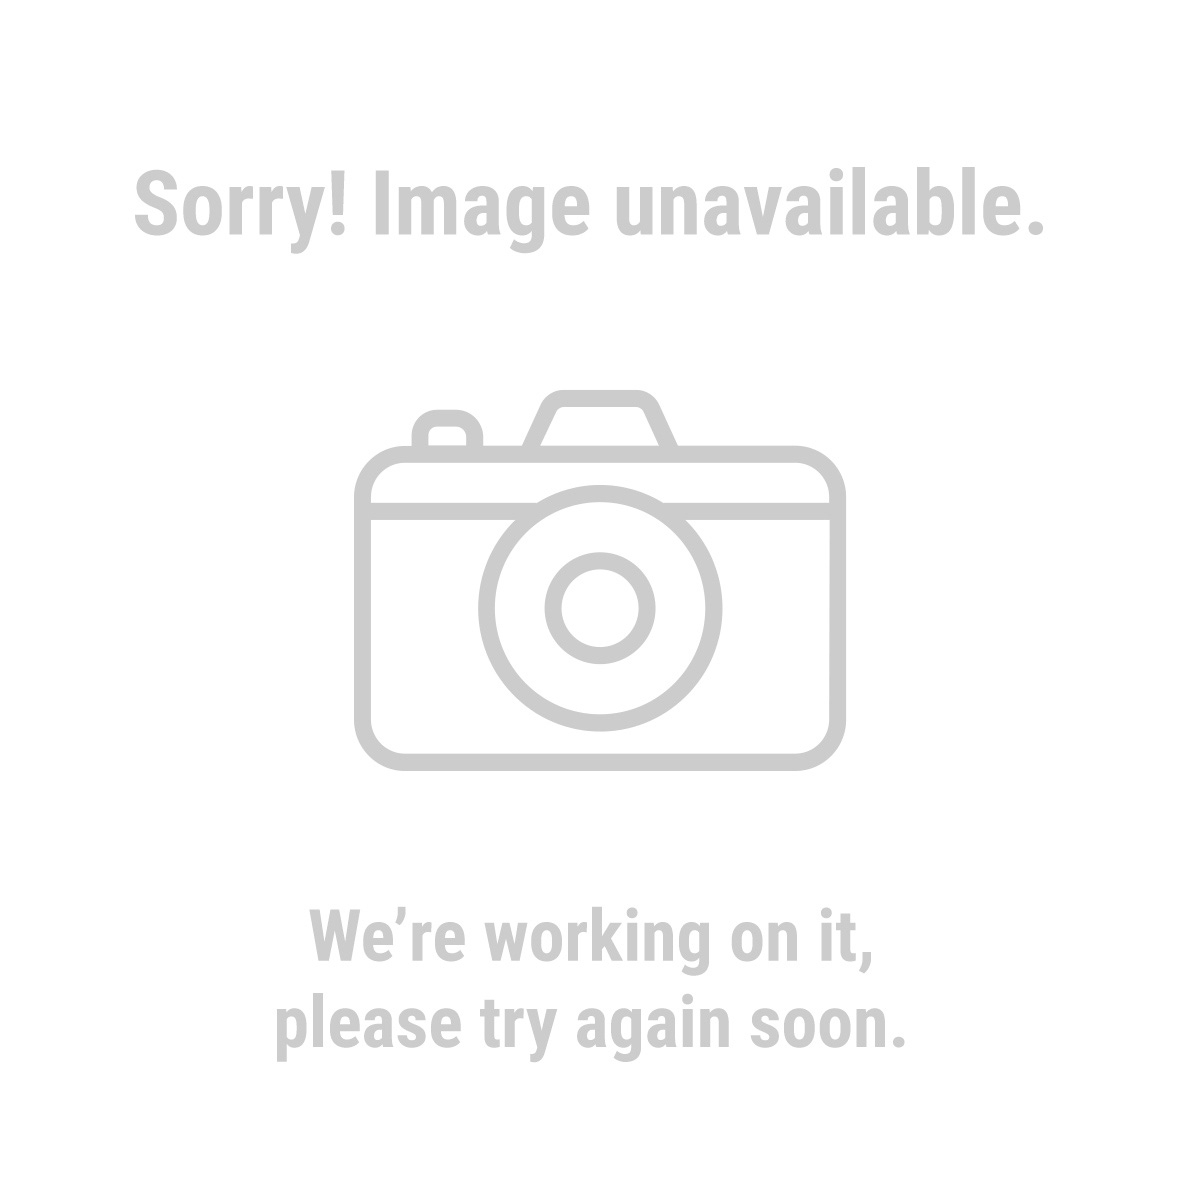 Chicago Electric Power Tools 62420 3-3/8 in. 6.8 Amp Heavy Duty Toe-Kick Saw